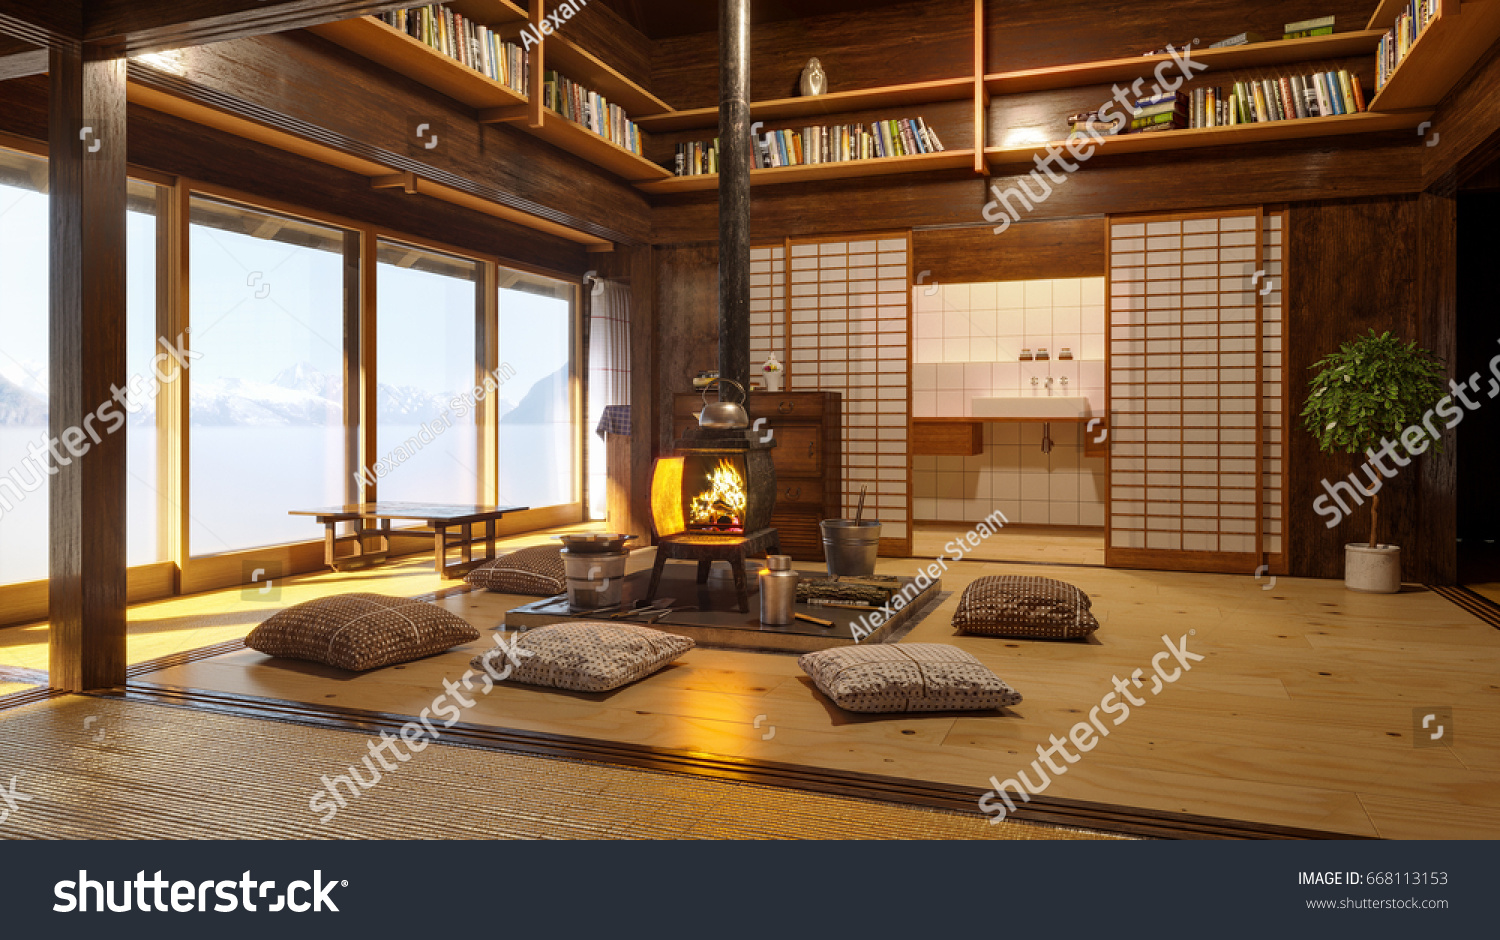 Japanese Interior Modern Japan Interior Design Stockillustration ...